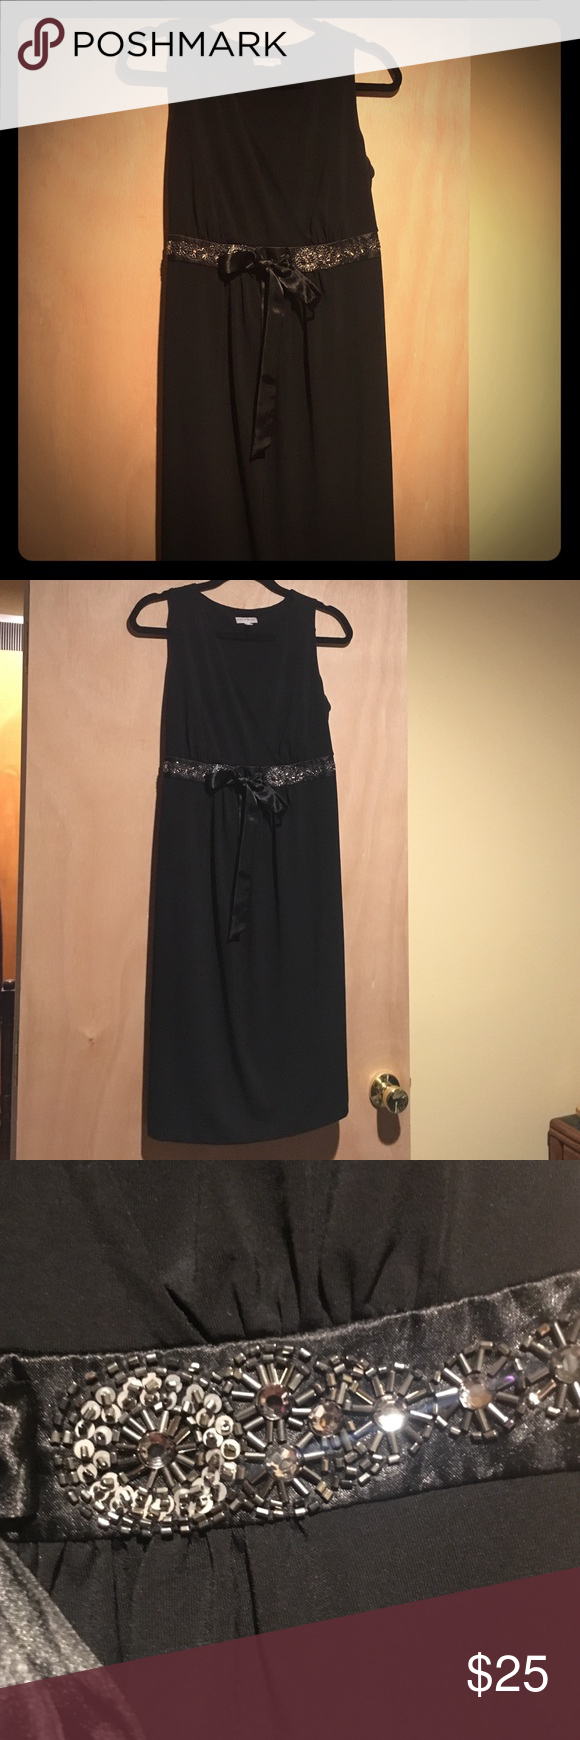 Elegant black maternity dress Elegant Pea in the Pod dress with beaded waist and satin sash.  This dress is comfortable and classy.  V-neck neckline lends hand to any beautiful necklace.  Perfect for any stage in pregnancy. A Pea in the Pod Other